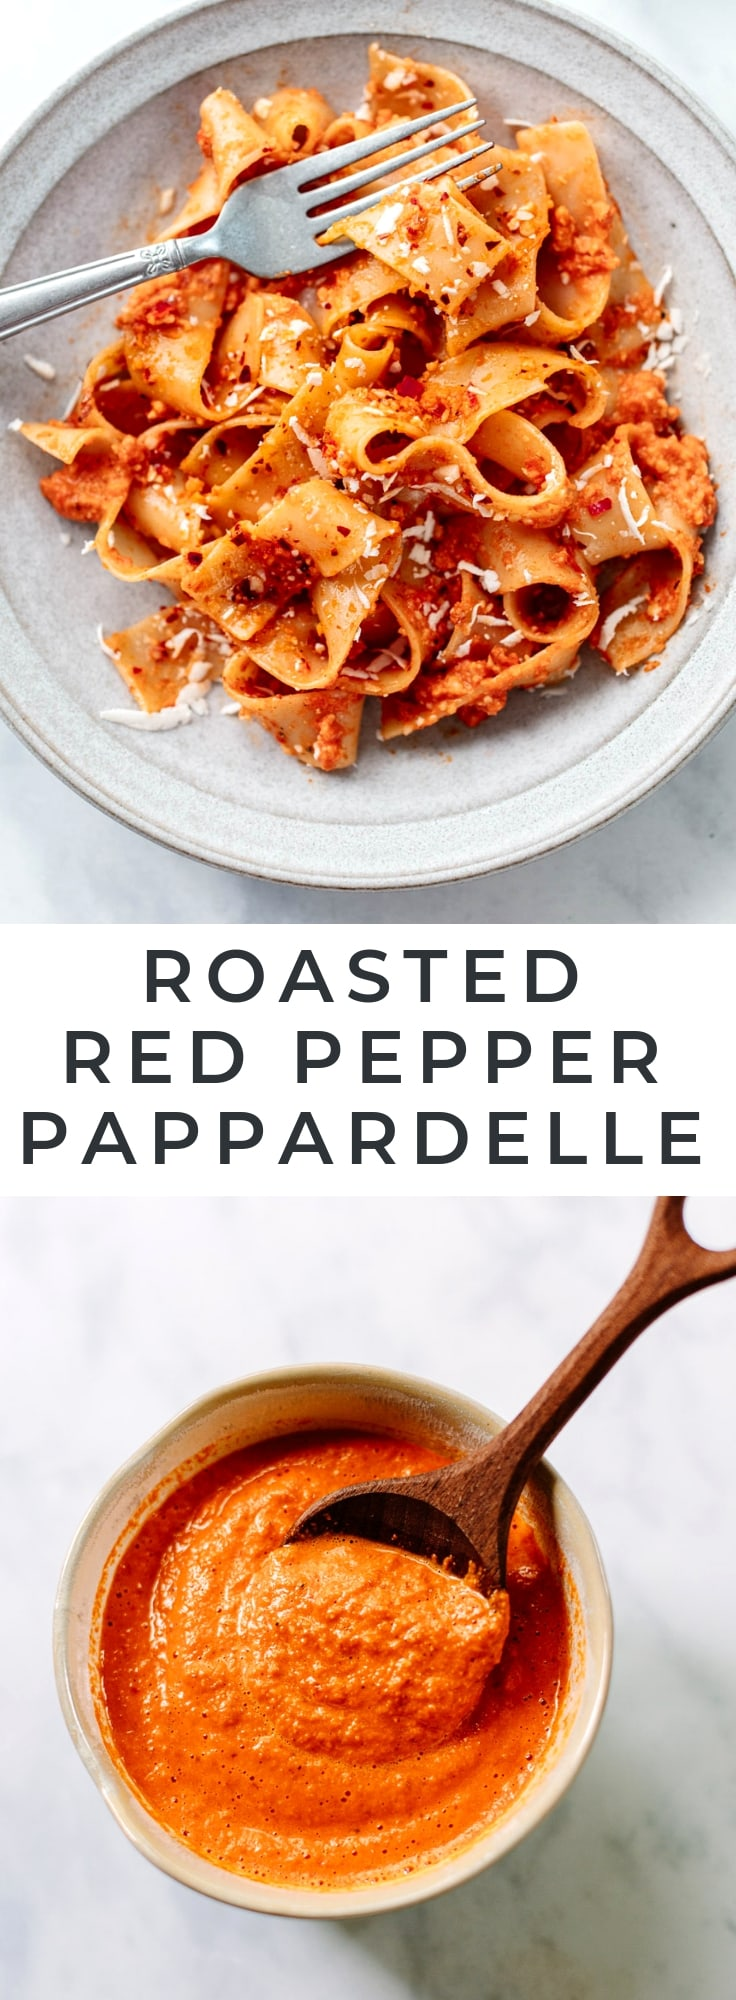 Pappardelle with Roasted Red Pepper Sauce - An easy, elevated pasta recipe with pappardelle noodles in a savory, spicy red bell pepper sauce. So good!